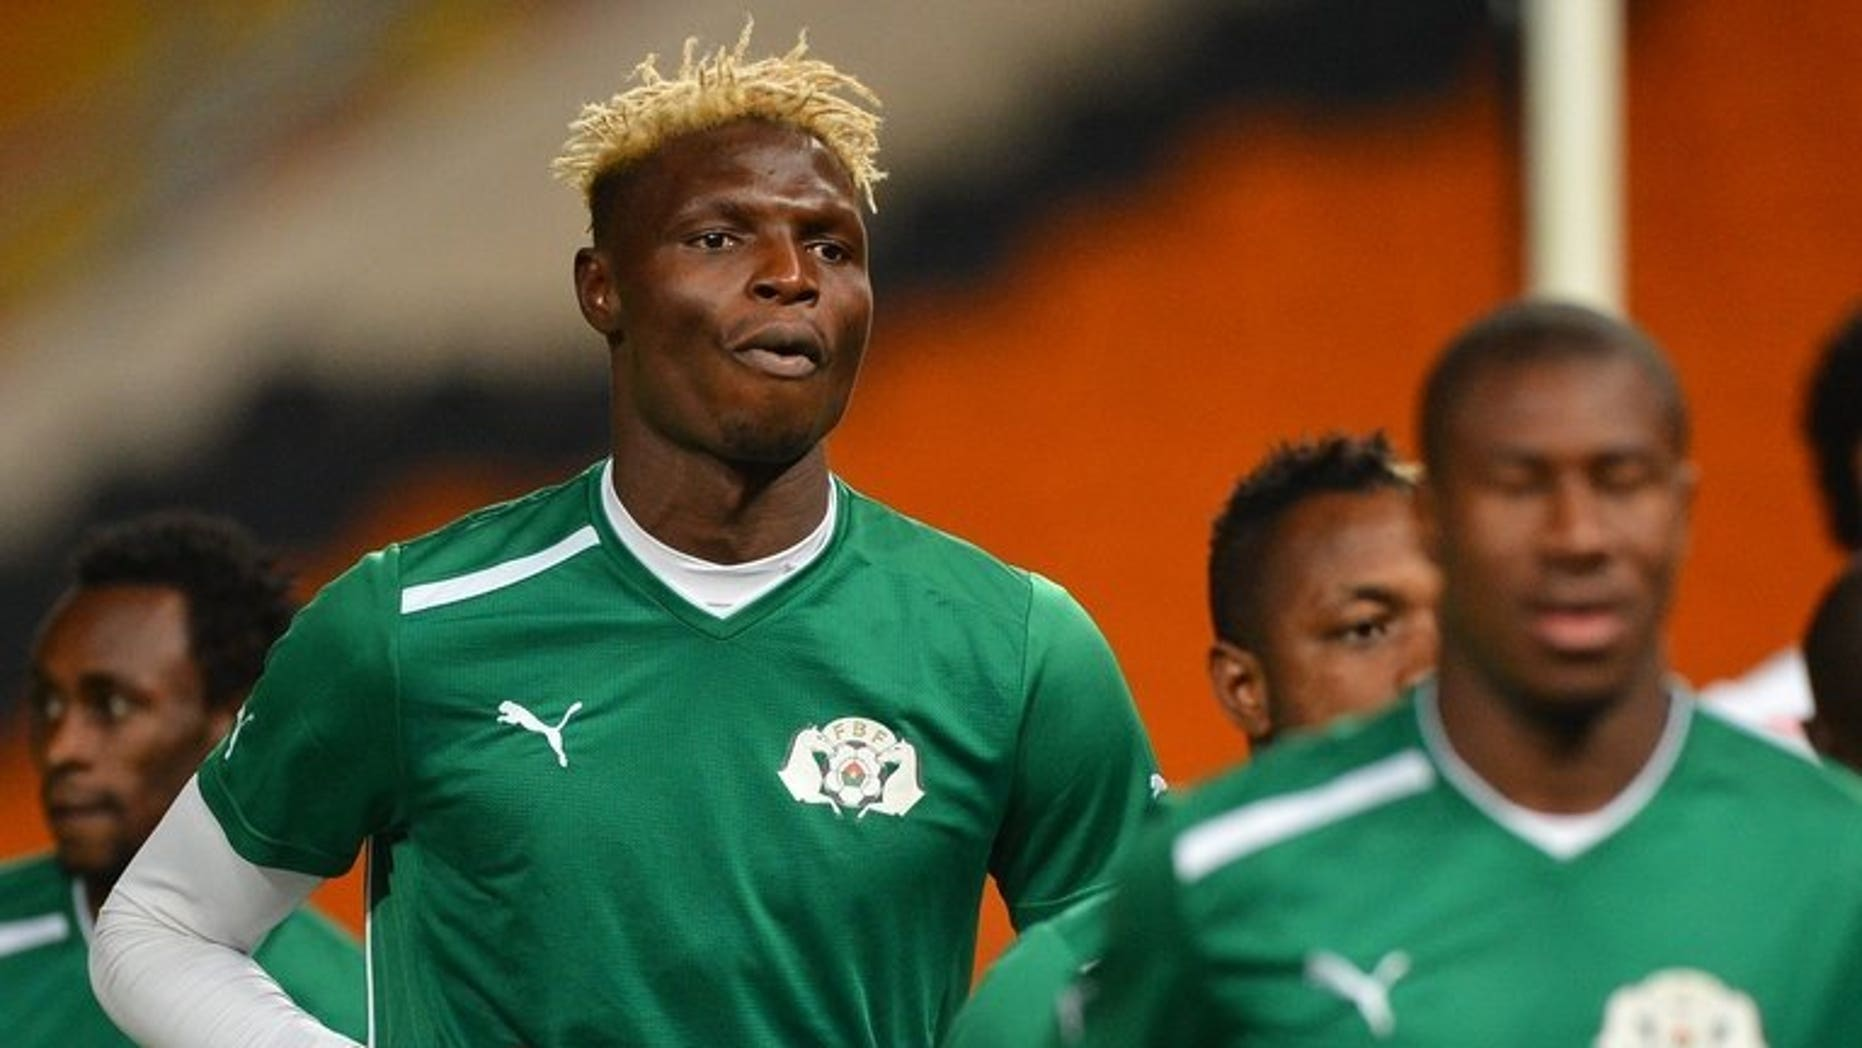 Burkina Faso striker Aristide Bance attends a training session at Soccer City in Soweto on February 9, 2013, on the eve of his side's 2013 Africa Cup of Nations final against Nigeria. Bance faces a race against time to be fit for the start of the new Bundesliga season with Augsburg next month after breaking his left arm in a friendly.